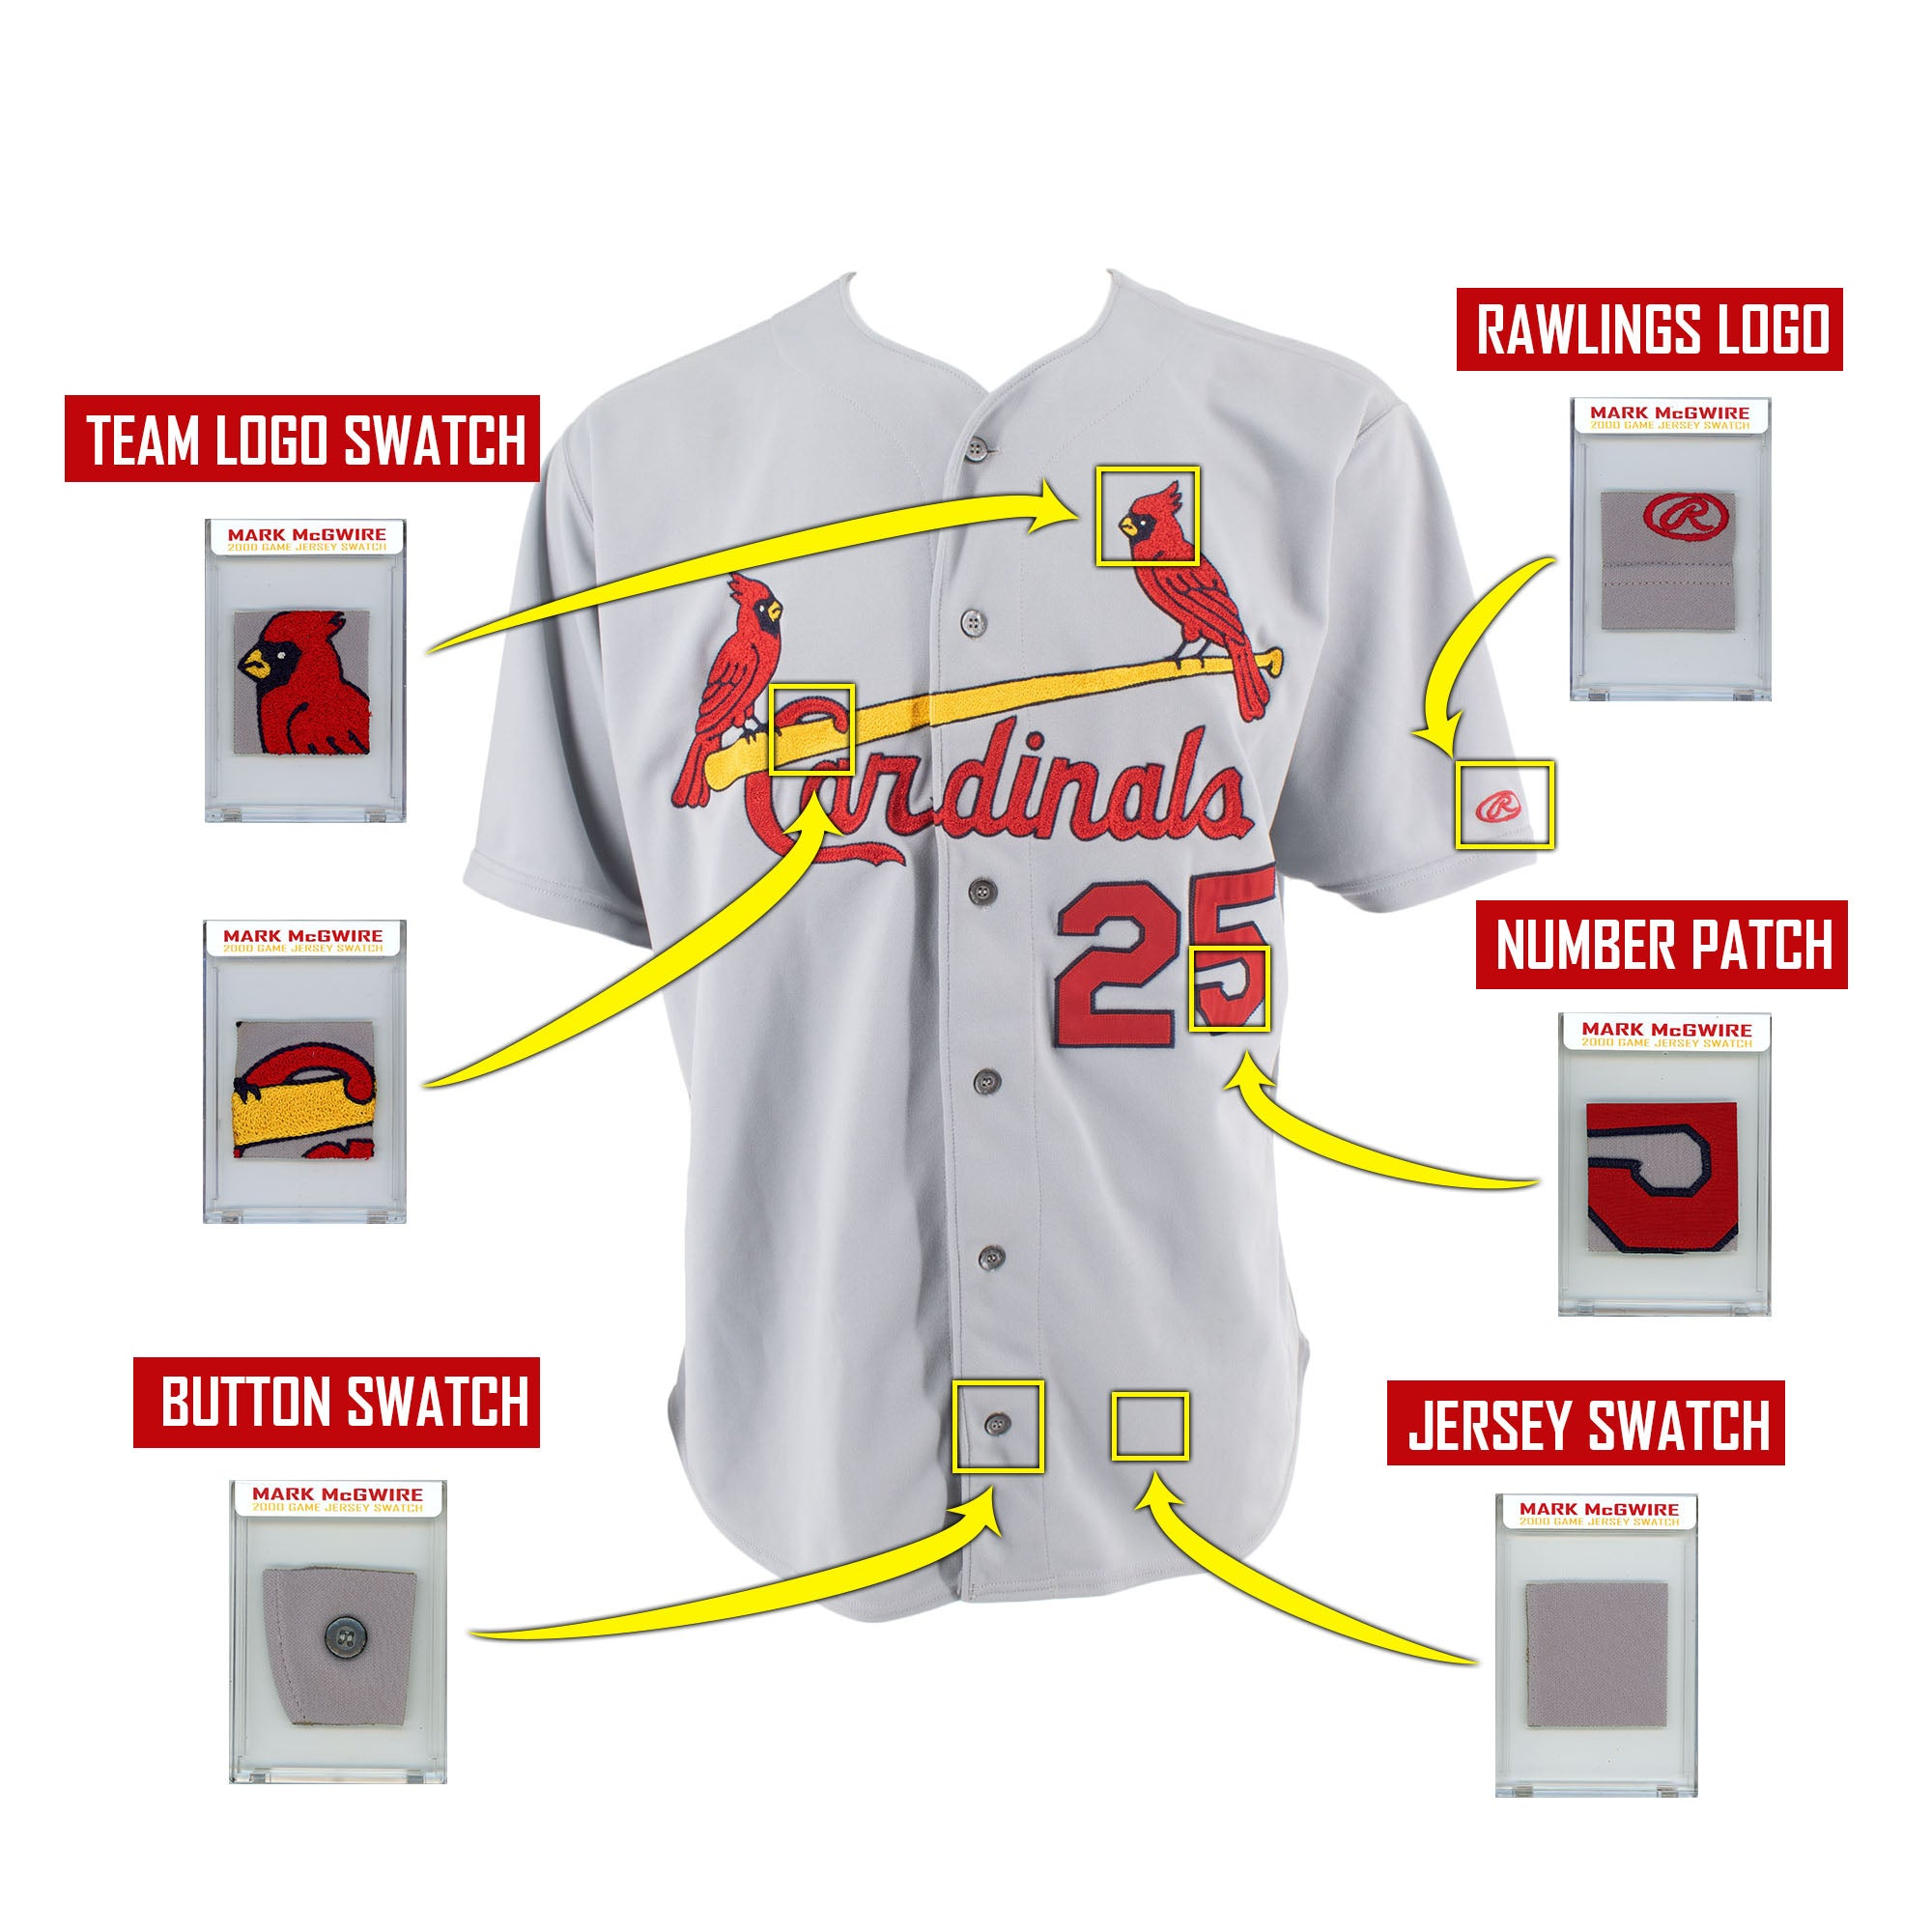 MARK McGWIRE 2000 CARDINALS GAME WORN JERSEY MYSTERY SWATCH BOX!